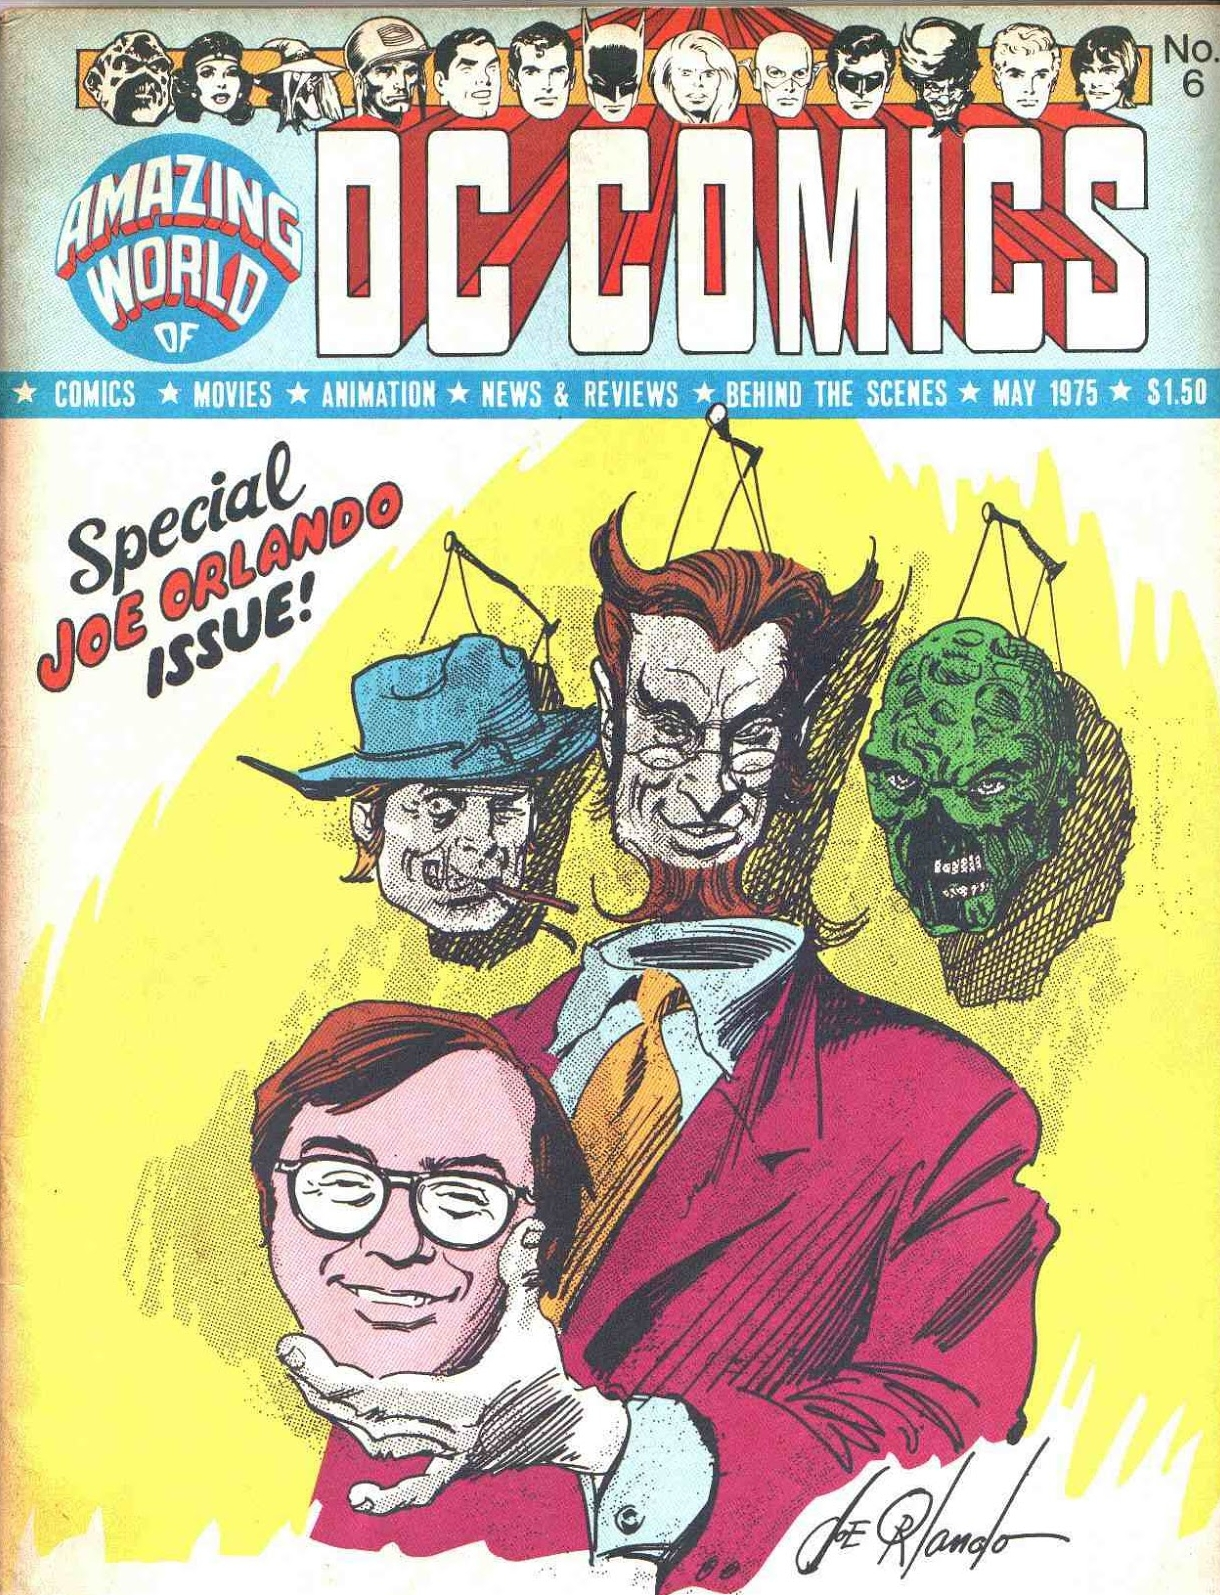 Amazing World of DC Comics (1974) #6, featuring an interview with Joe Orlando given by Paul Levitz.